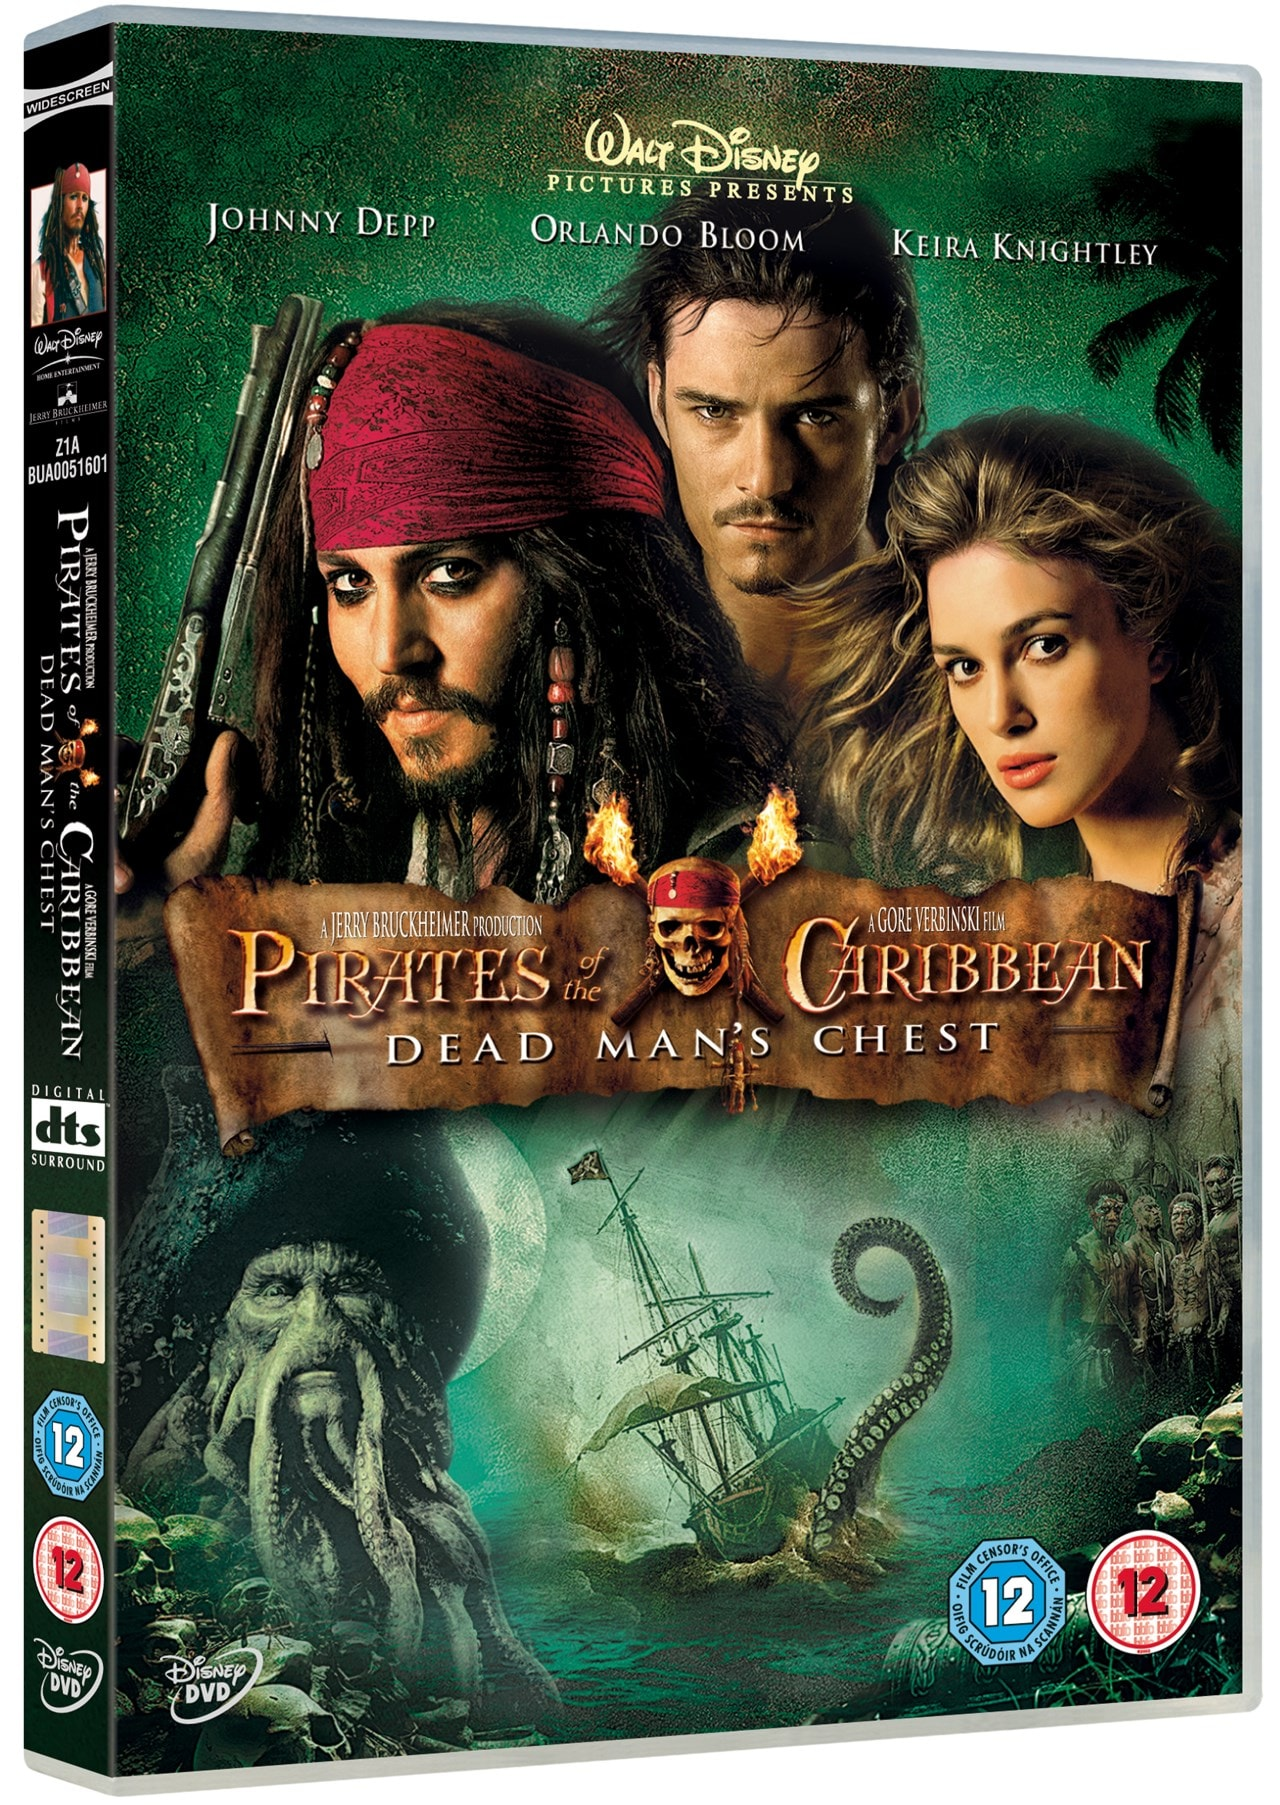 Pirates of the Caribbean: Dead Man's Chest - 4